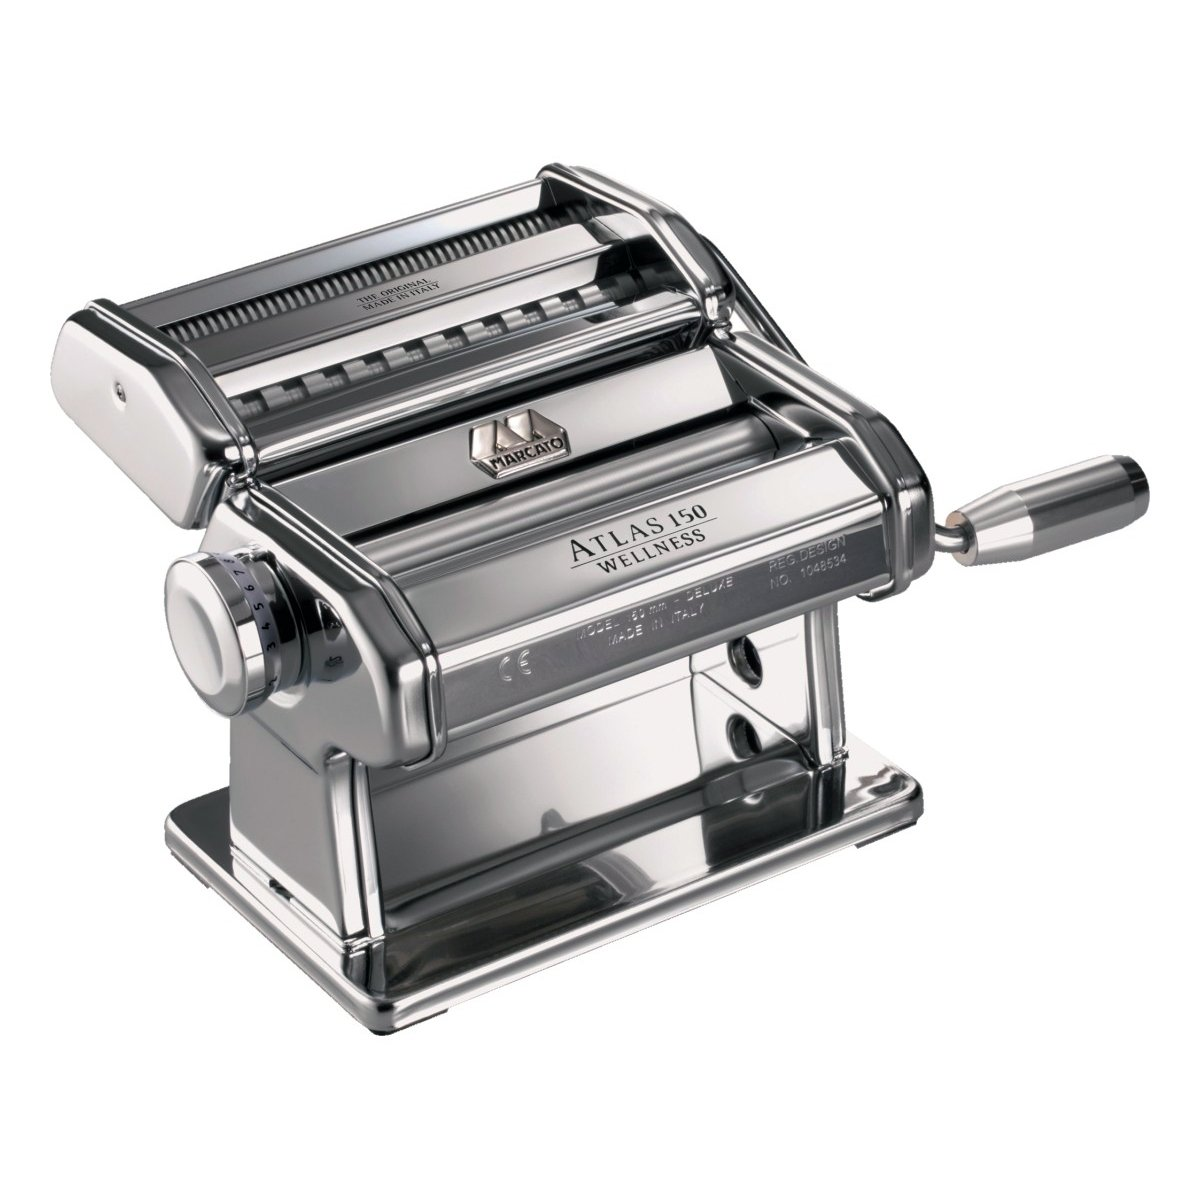 Marcato Atlas Pasta Machine, Silver, 150-Millimeters Wide, Includes Pasta Machine with Pasta Cutter, Hand Crank, and Instructions by Marcato (Image #1)